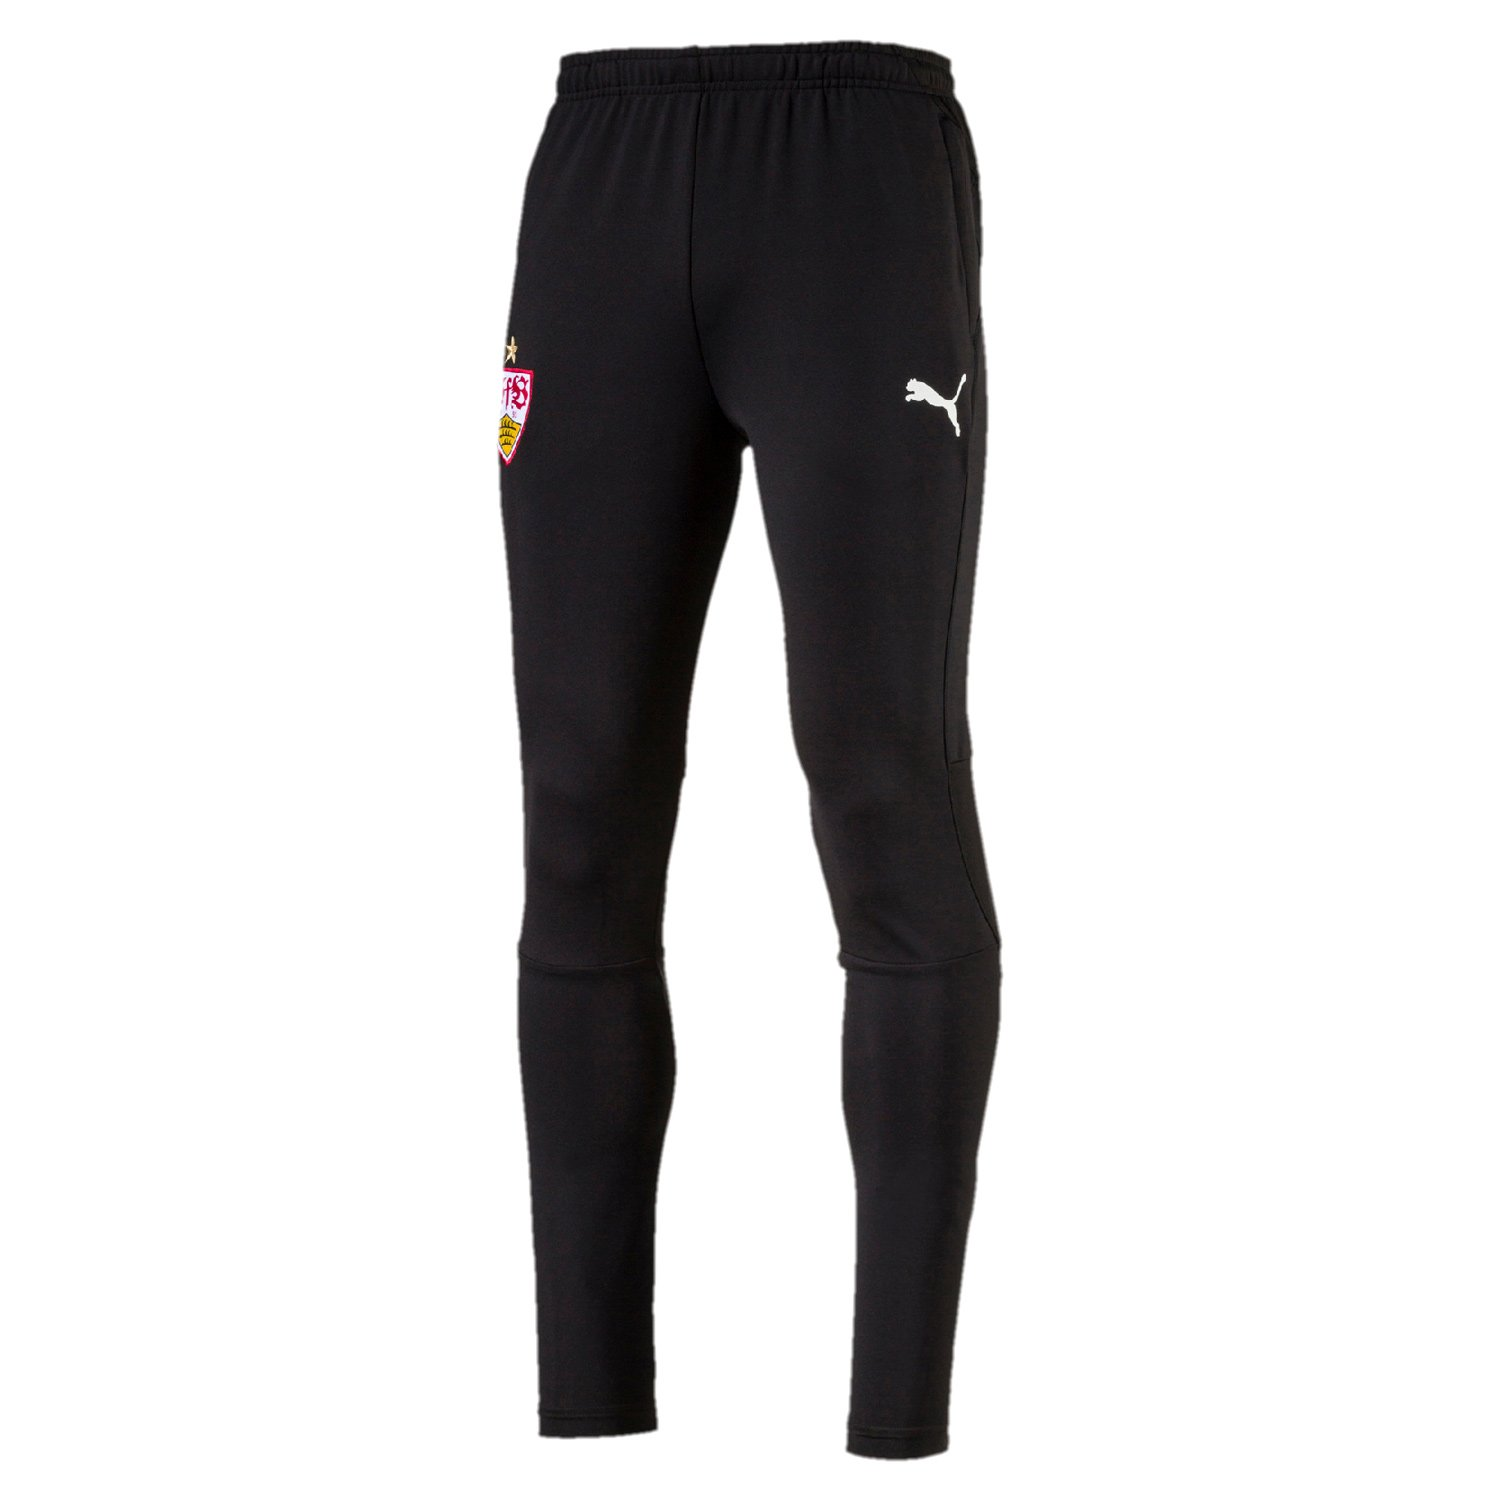 Puma Herren VfB Stuttgart Training Pants 2 Side Pockets with Zip Hose